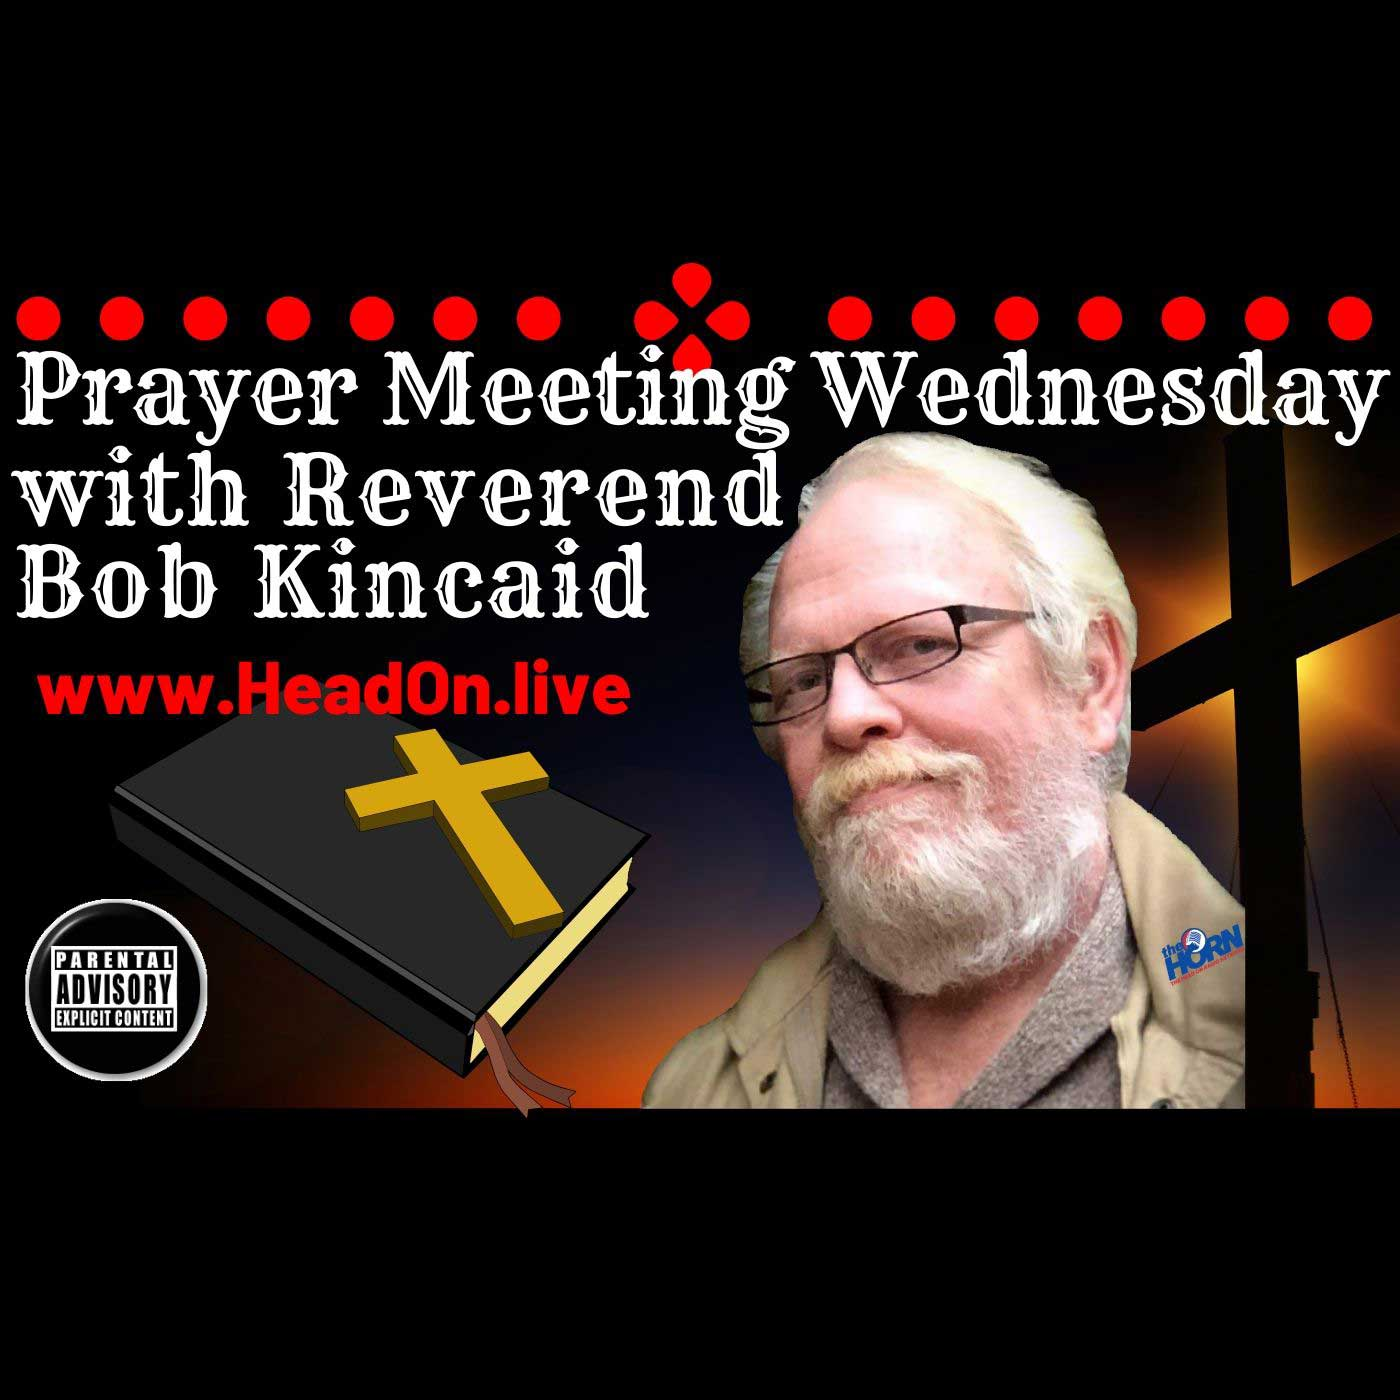 Prayer Meetin' Wednesday, Head-ON With Bob Kincaid, 11 March 2020